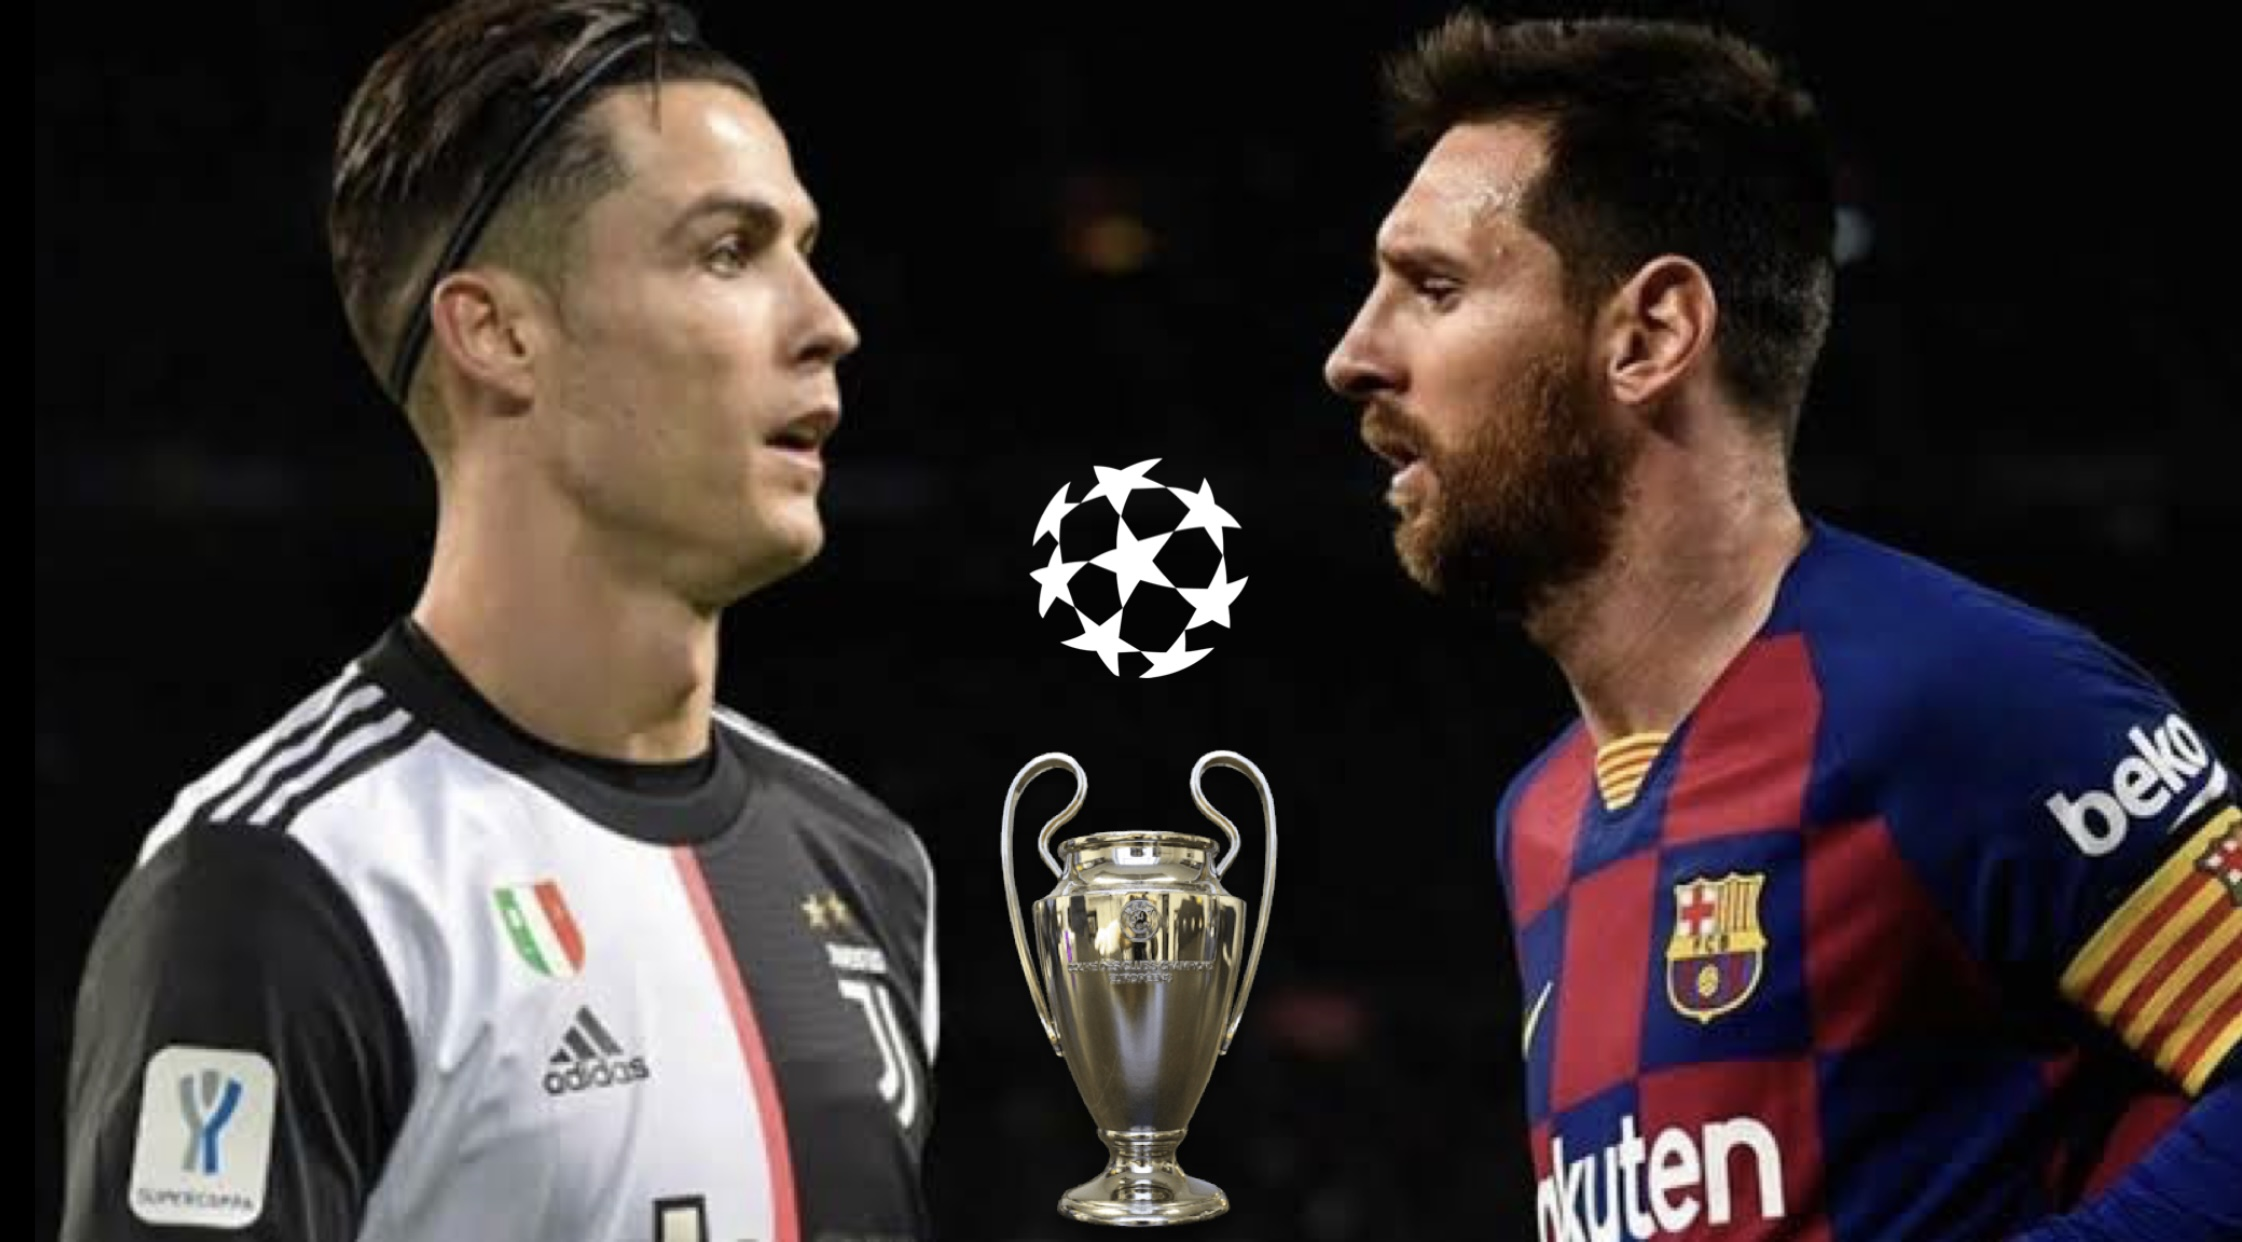 ¡Messi vs CR7! Checa los grupos de la Champions 20/21